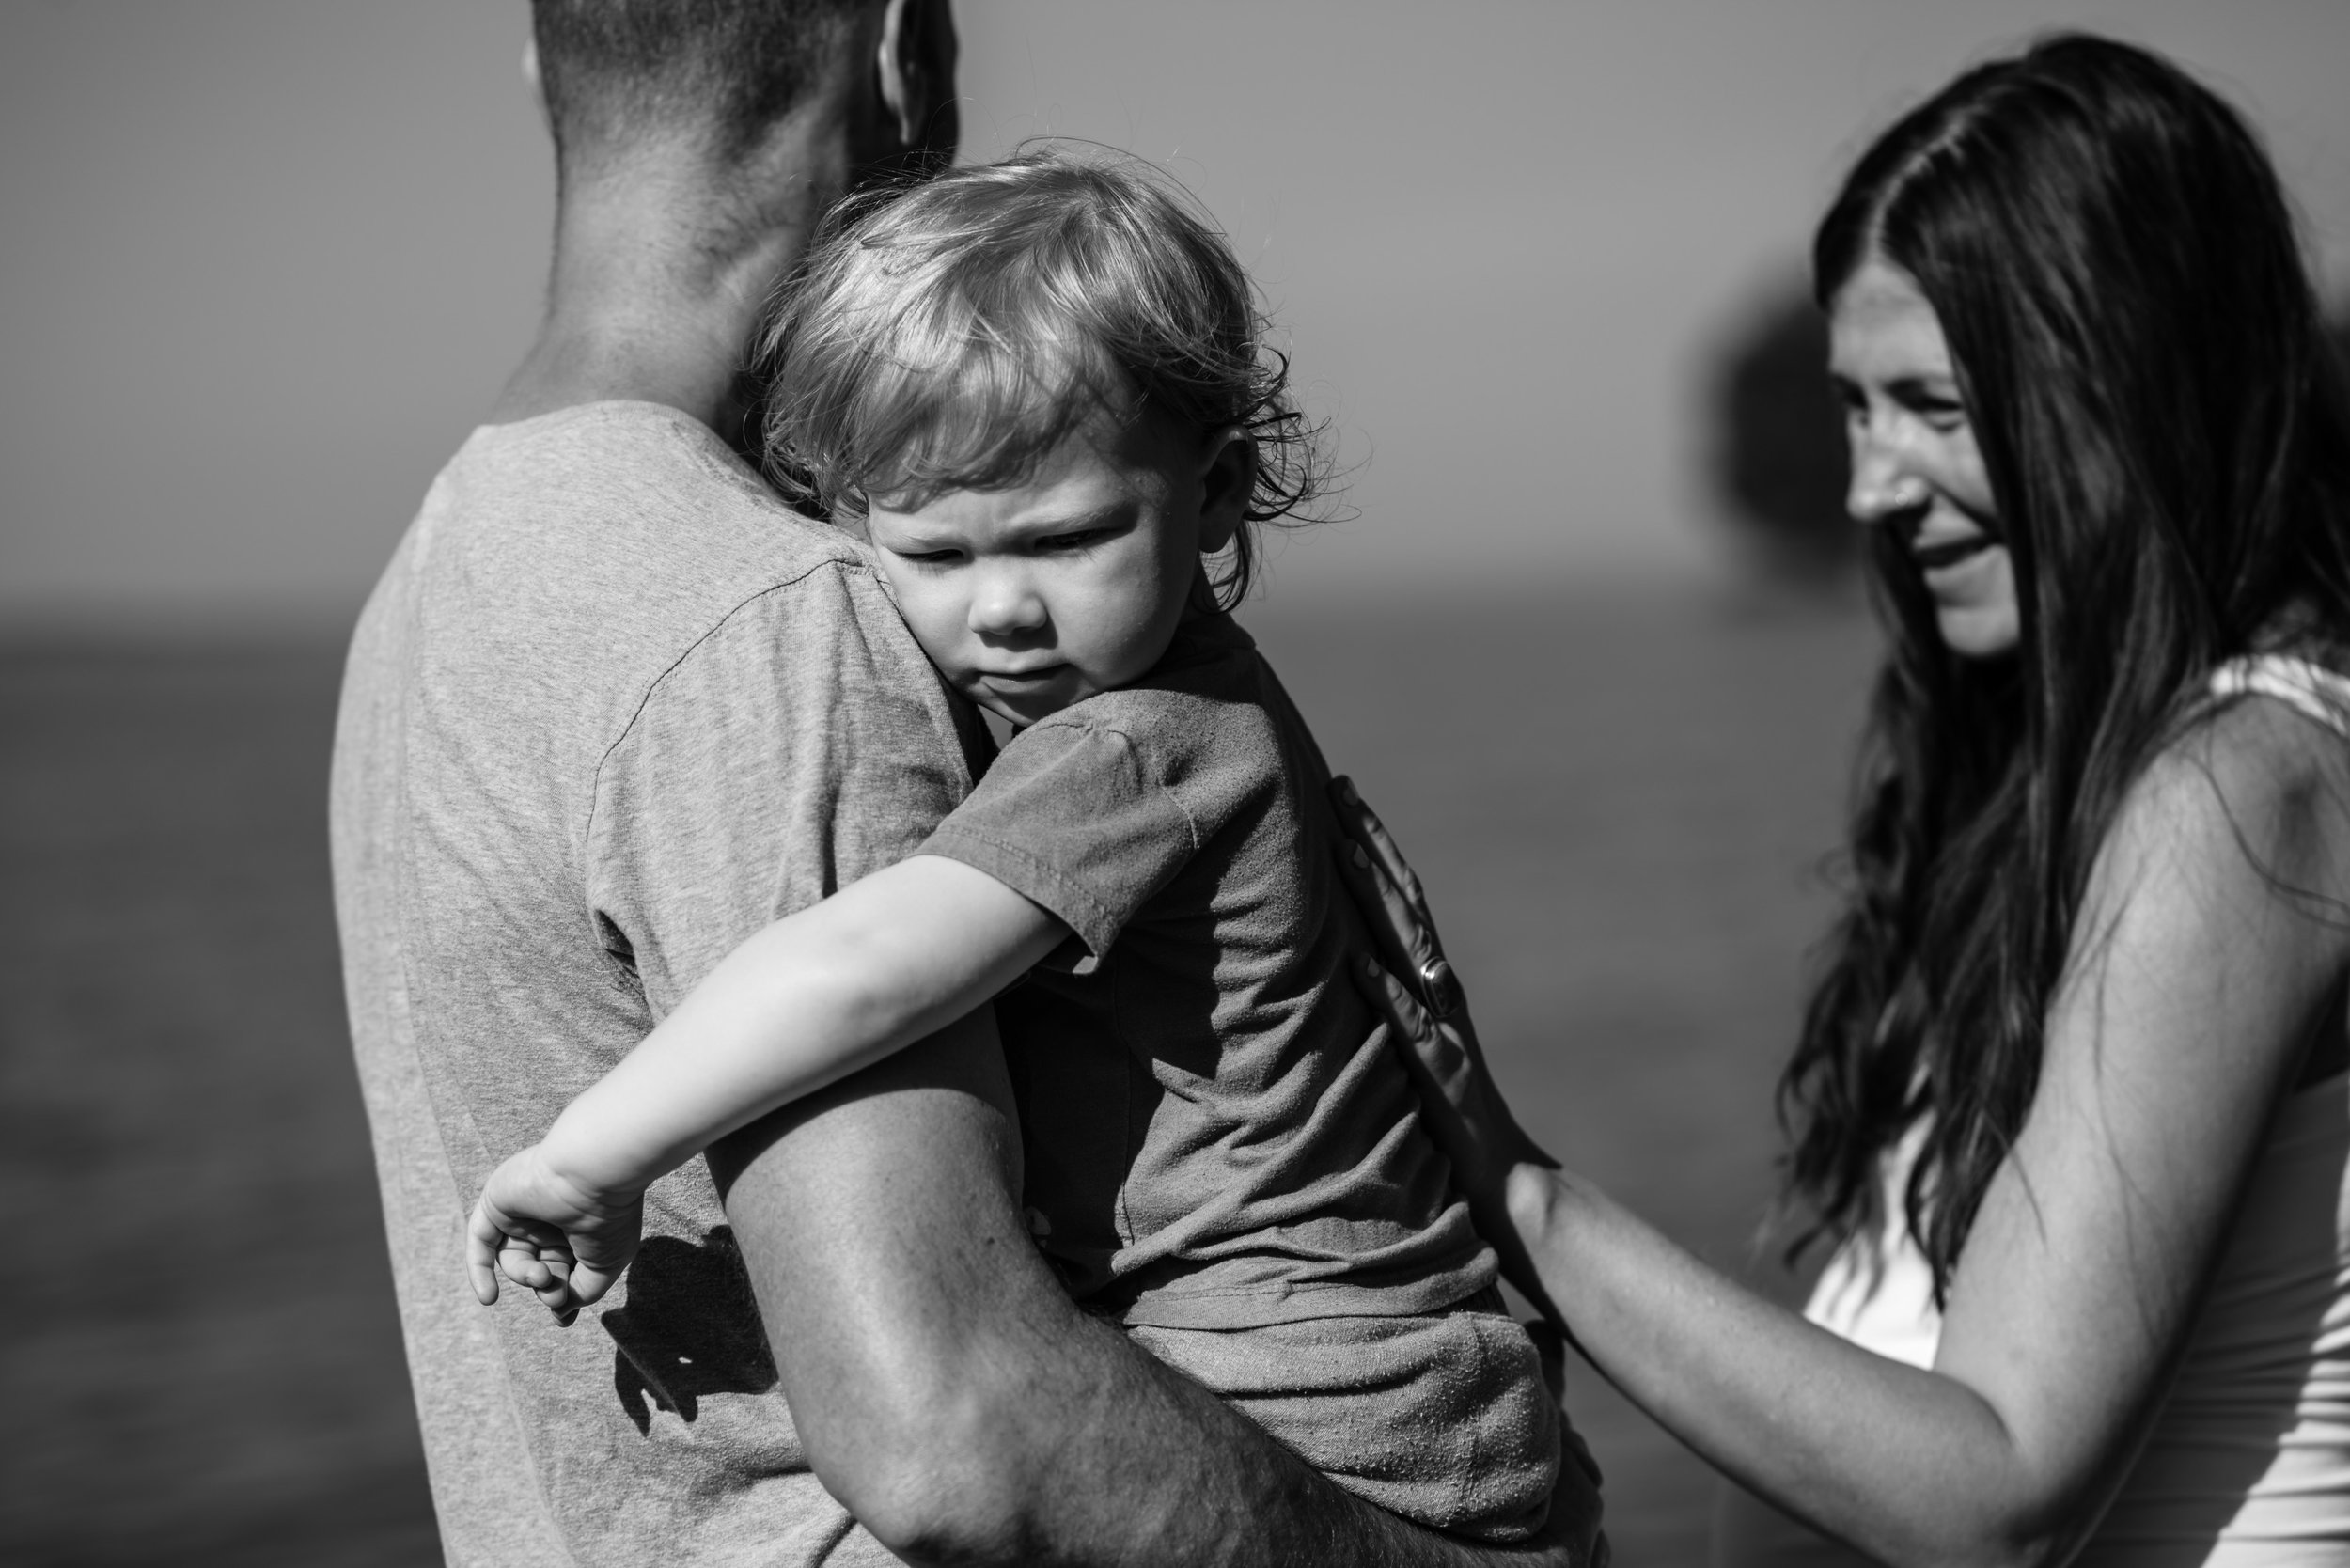 family documentary photography in kingston by viara mileva-092630vm.jpg